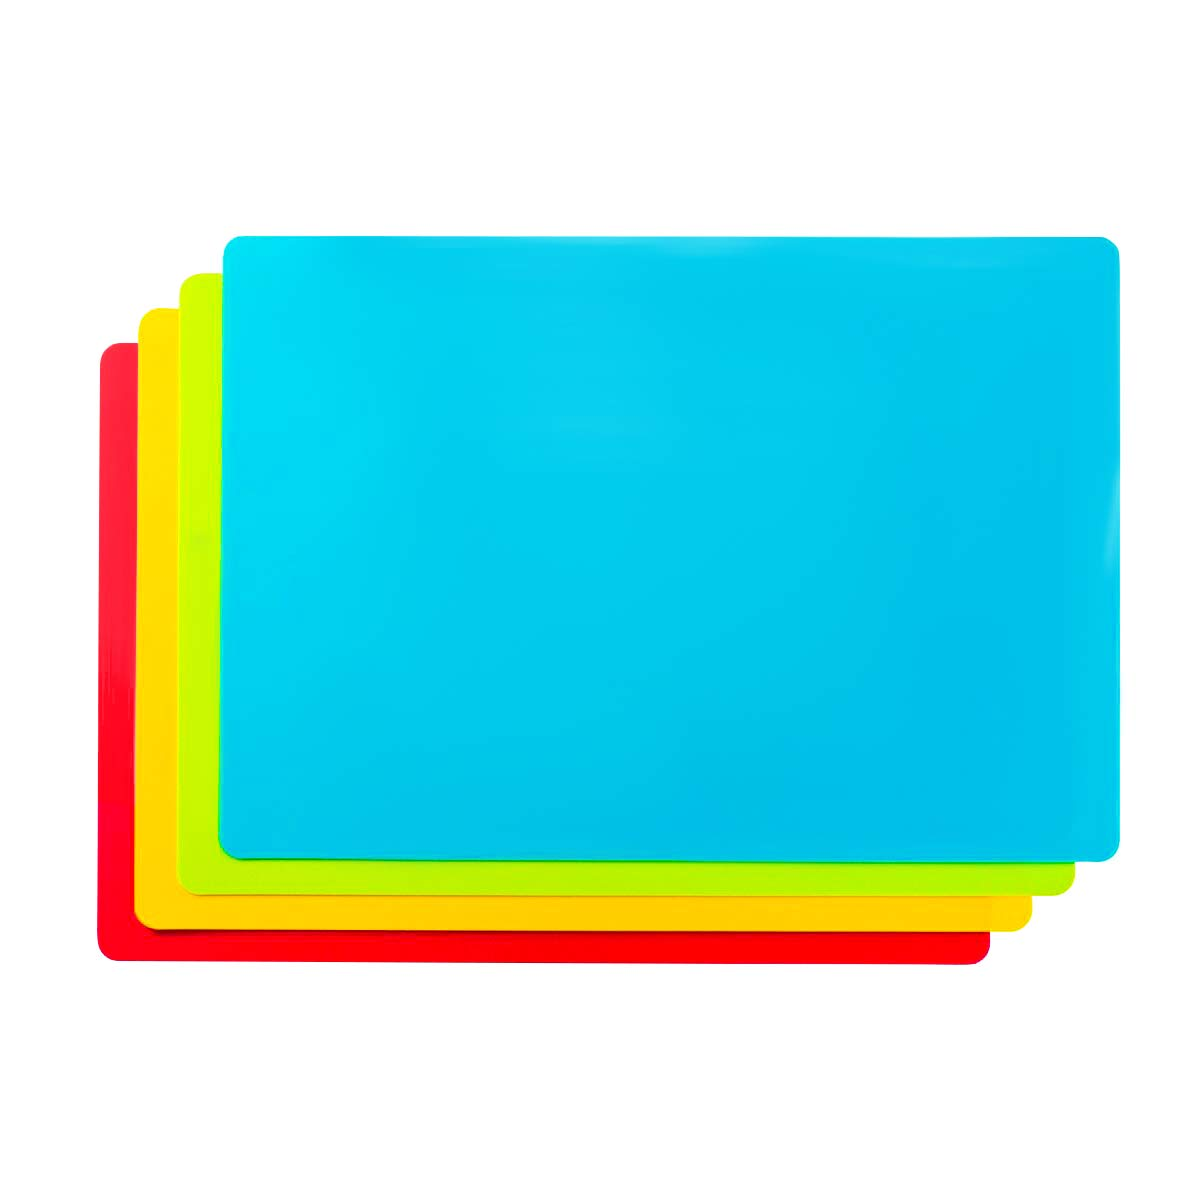 Bellemain Set of 4 Flexible Non-Skid 15'' x 11'' Cutting Board Mats with Food Color Codes by Bellemain (Image #1)